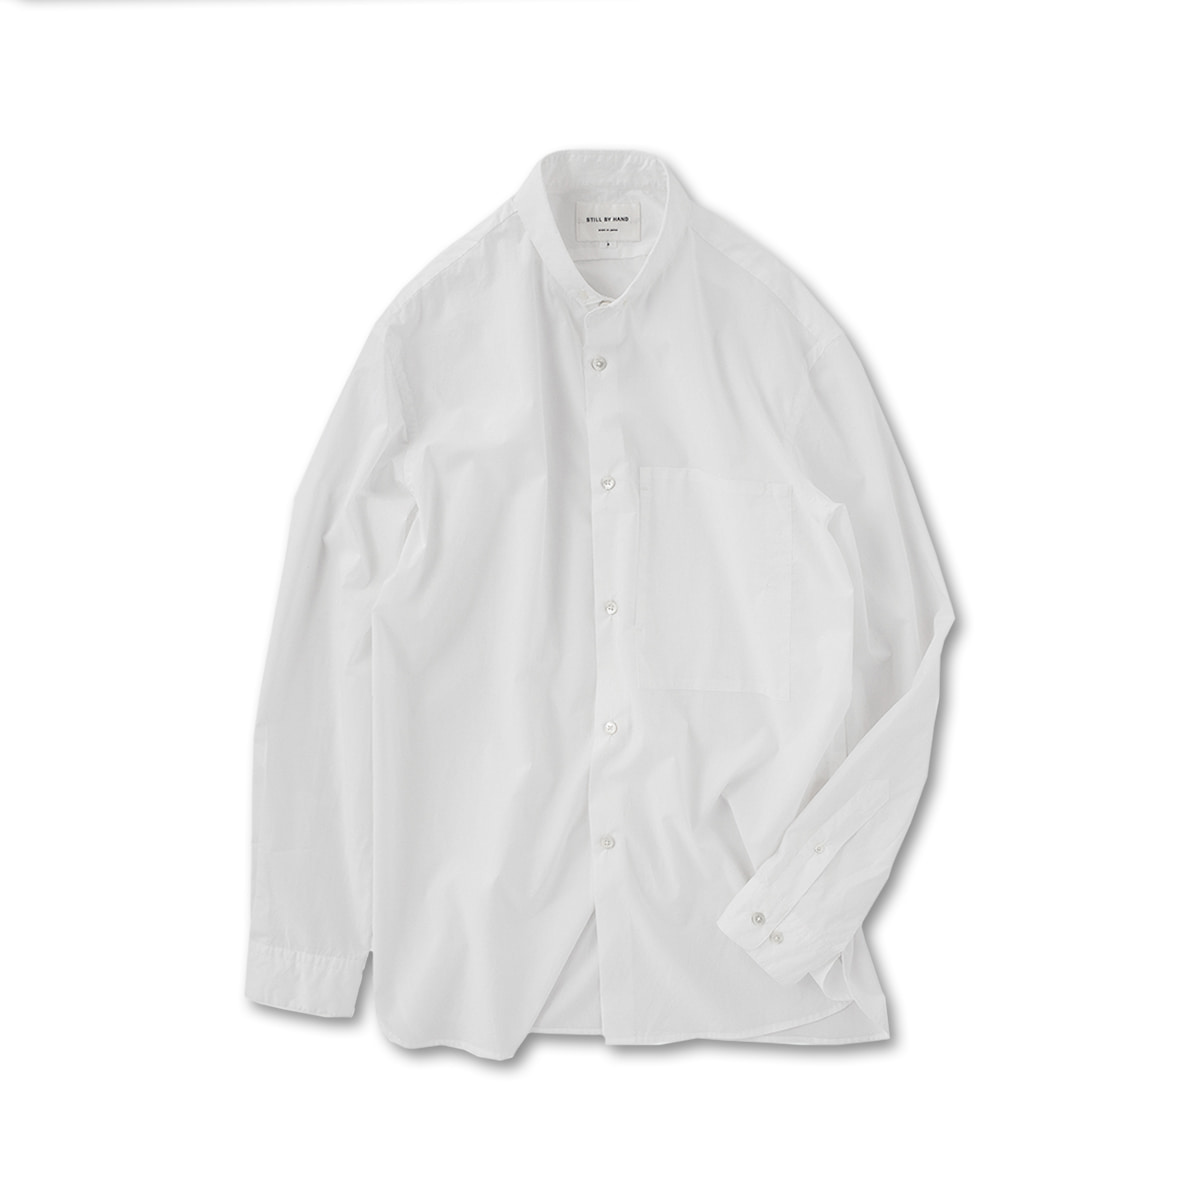 [STILL BY HAND] SH03201OS - WING COLLAR SHIRT 'WHITE'